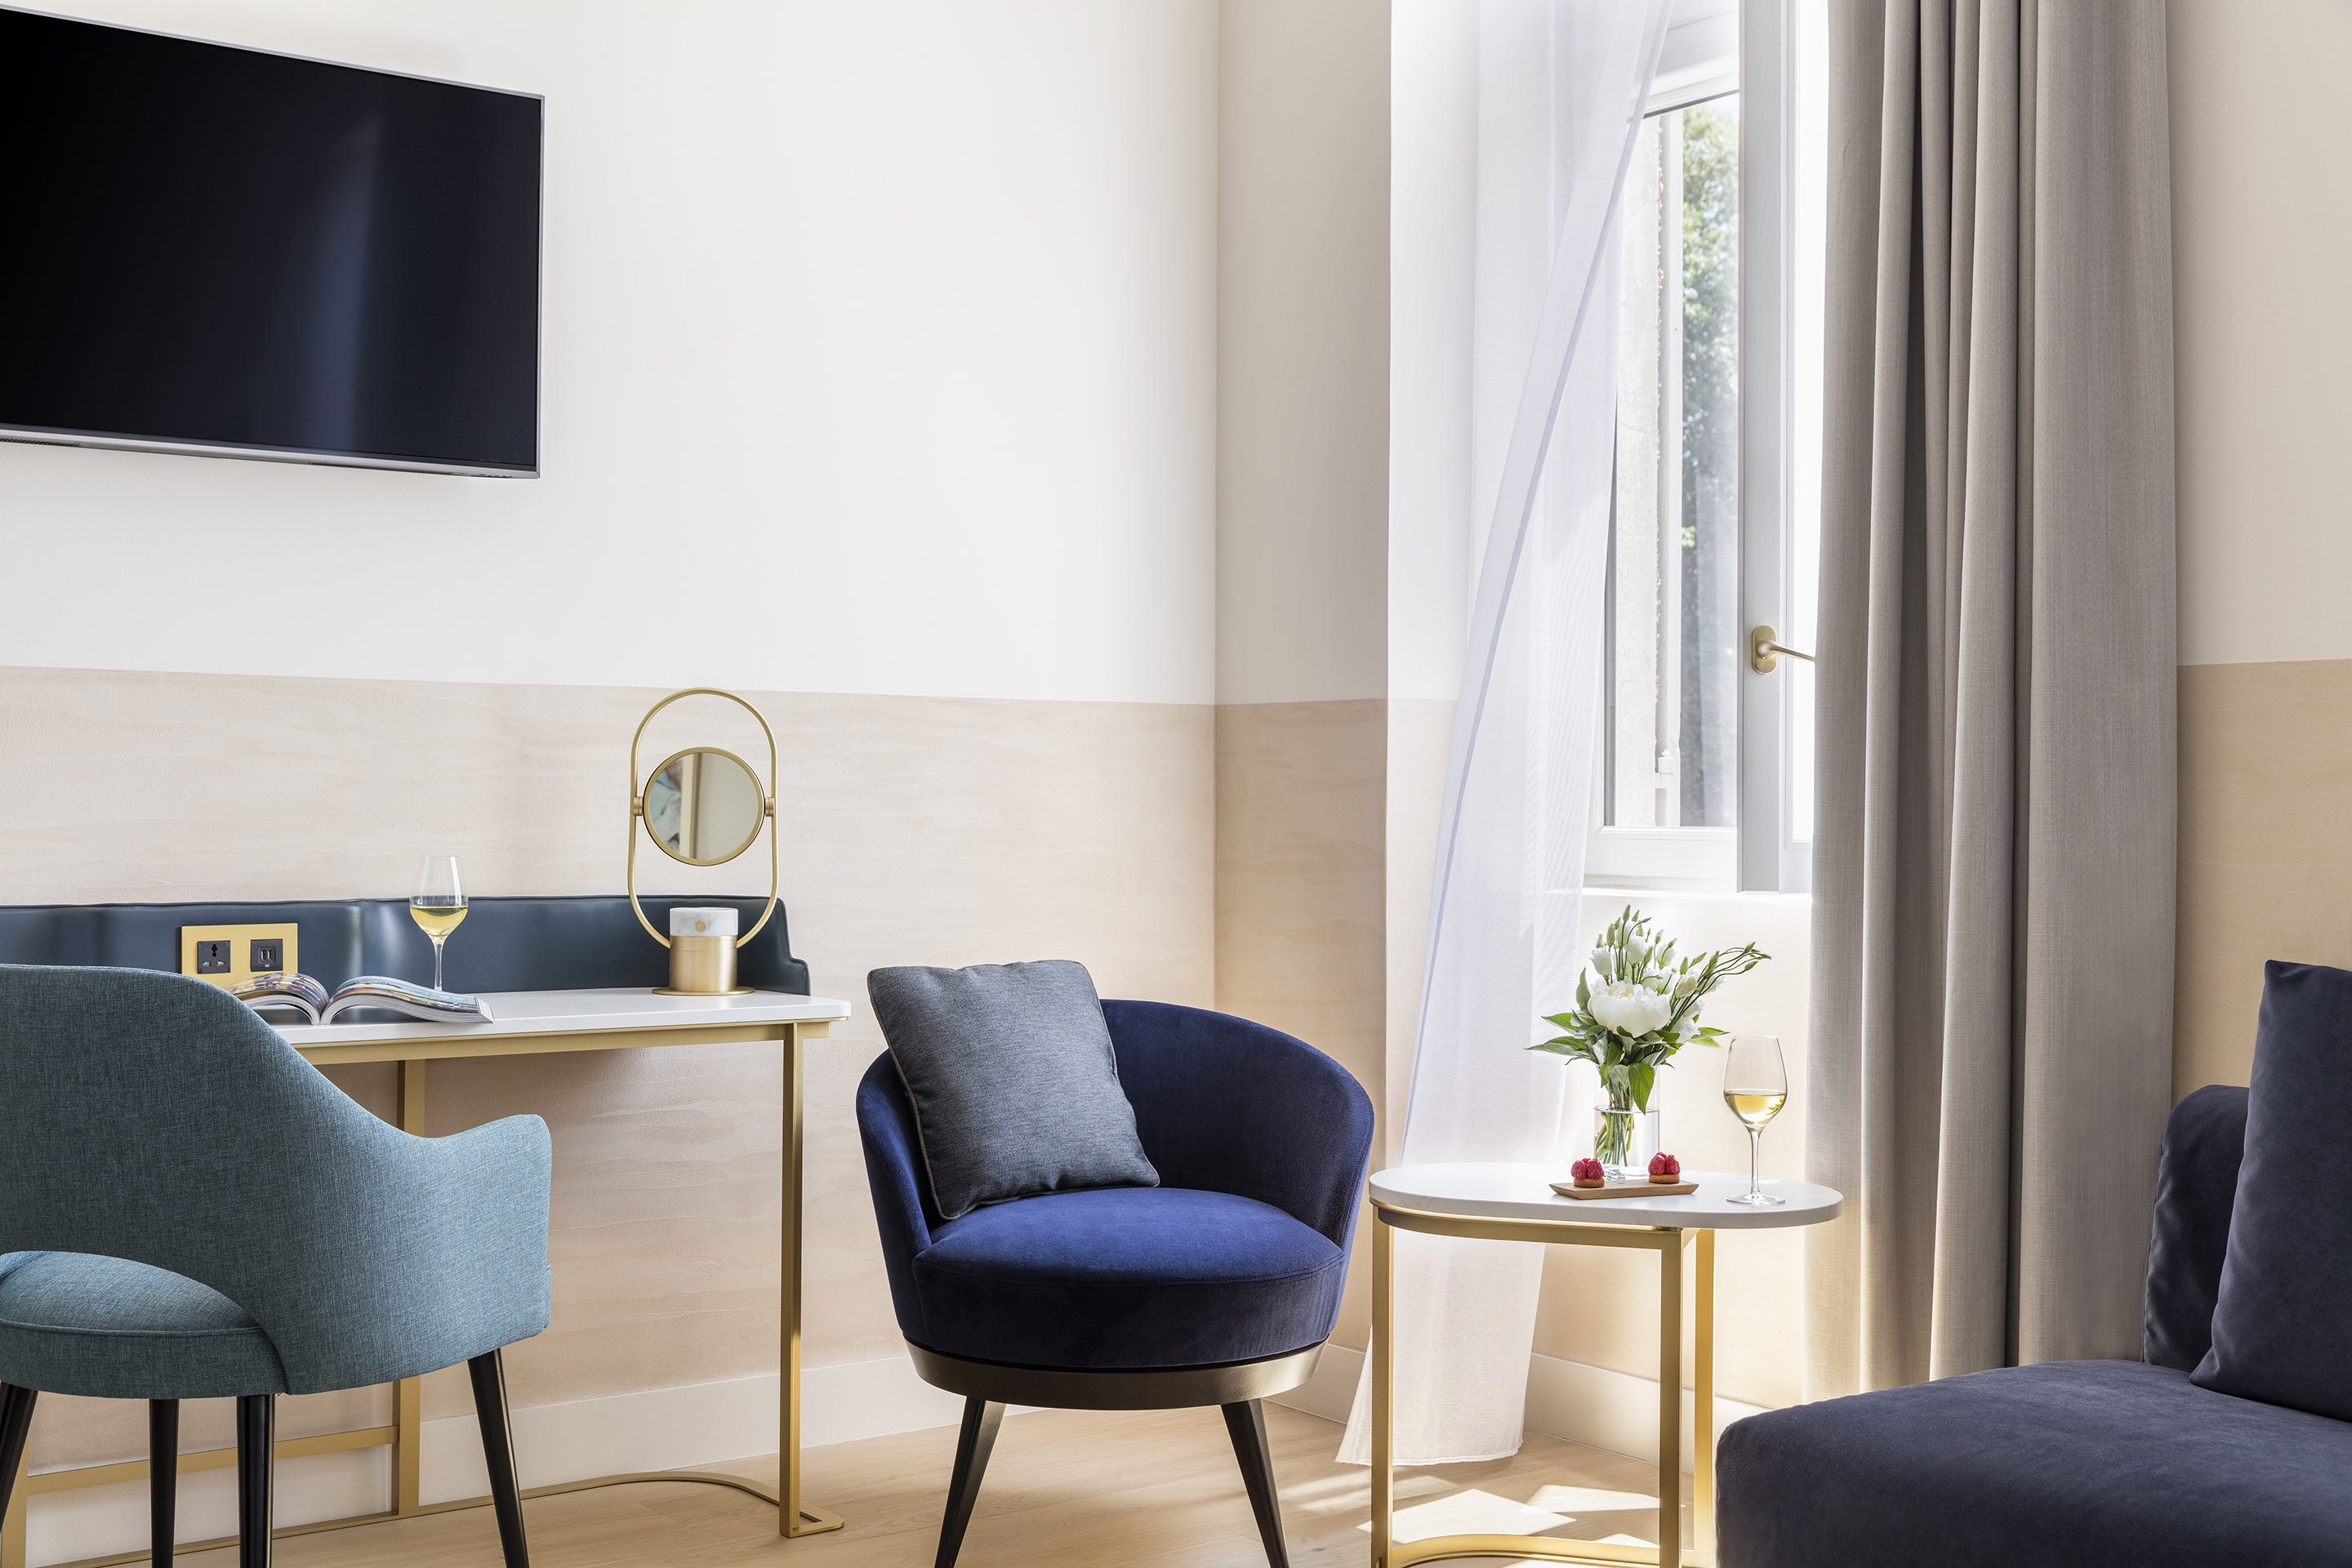 maison albar hotels l imperator nimes luxury hotel nimes official site